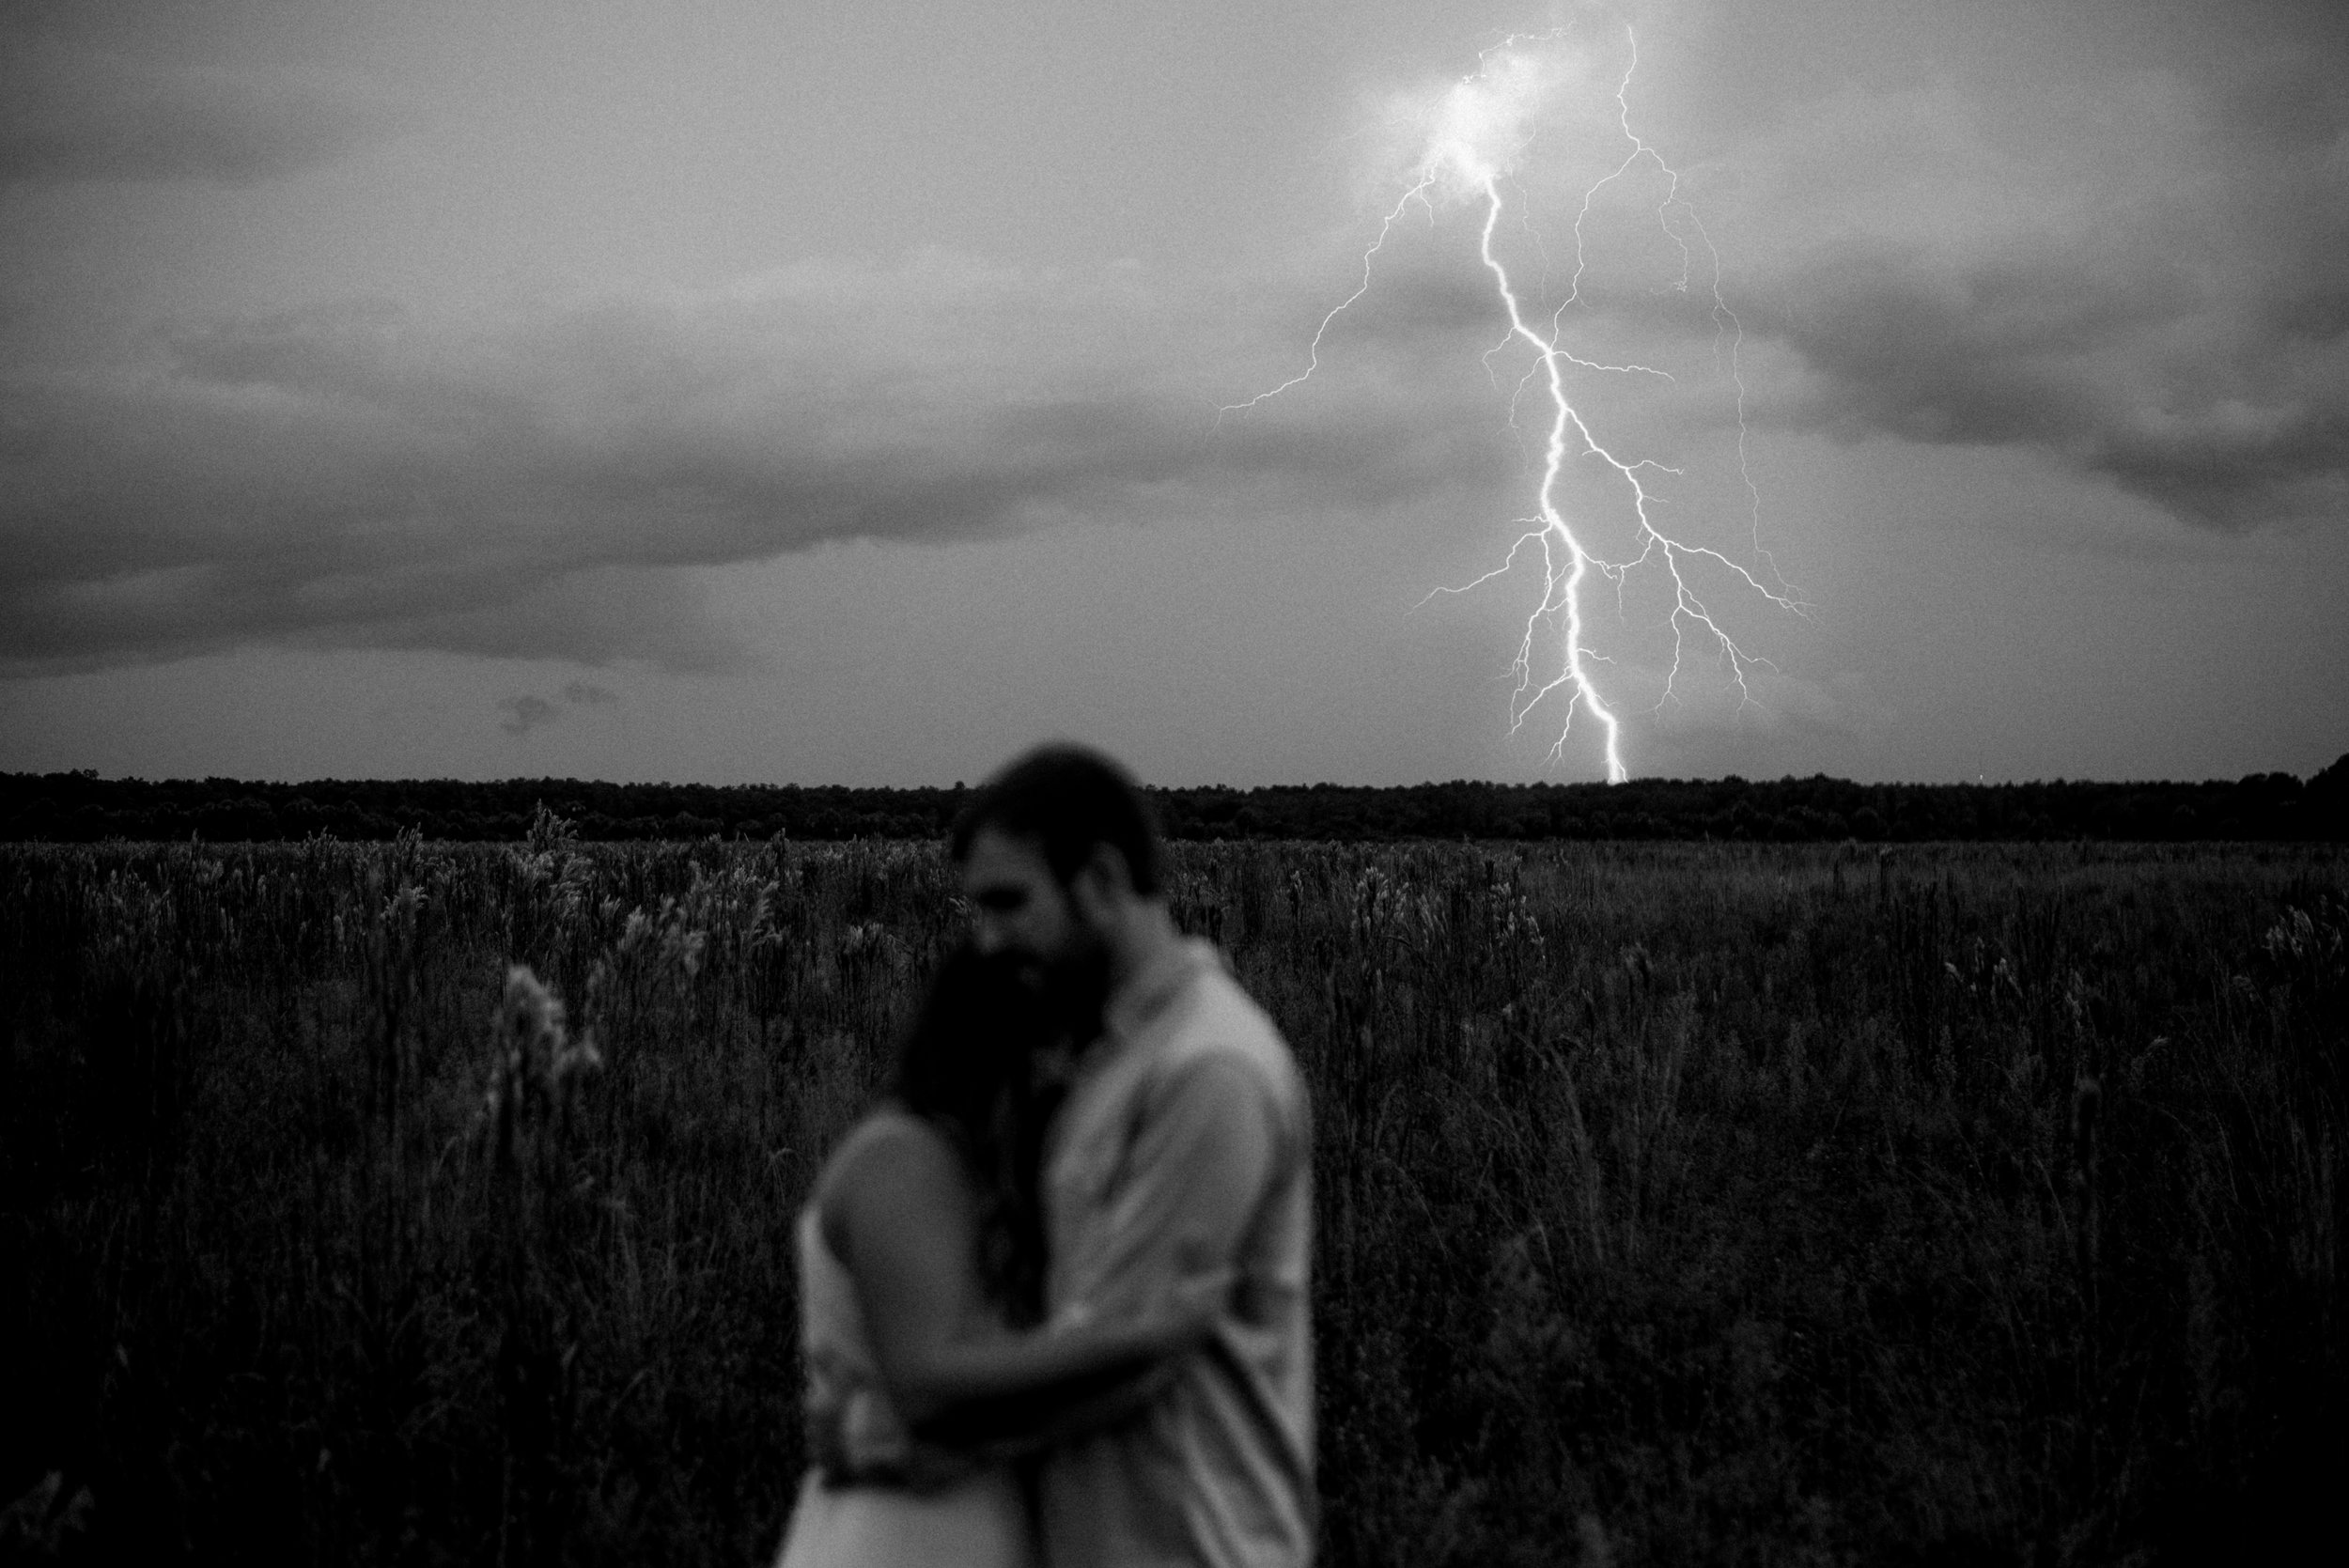 Jaeden & Mackenzie Hamernik Couple Portrait Session in an open field in Naples Florida during the stormy season. This moment embodies to keep faith that everything will be okay